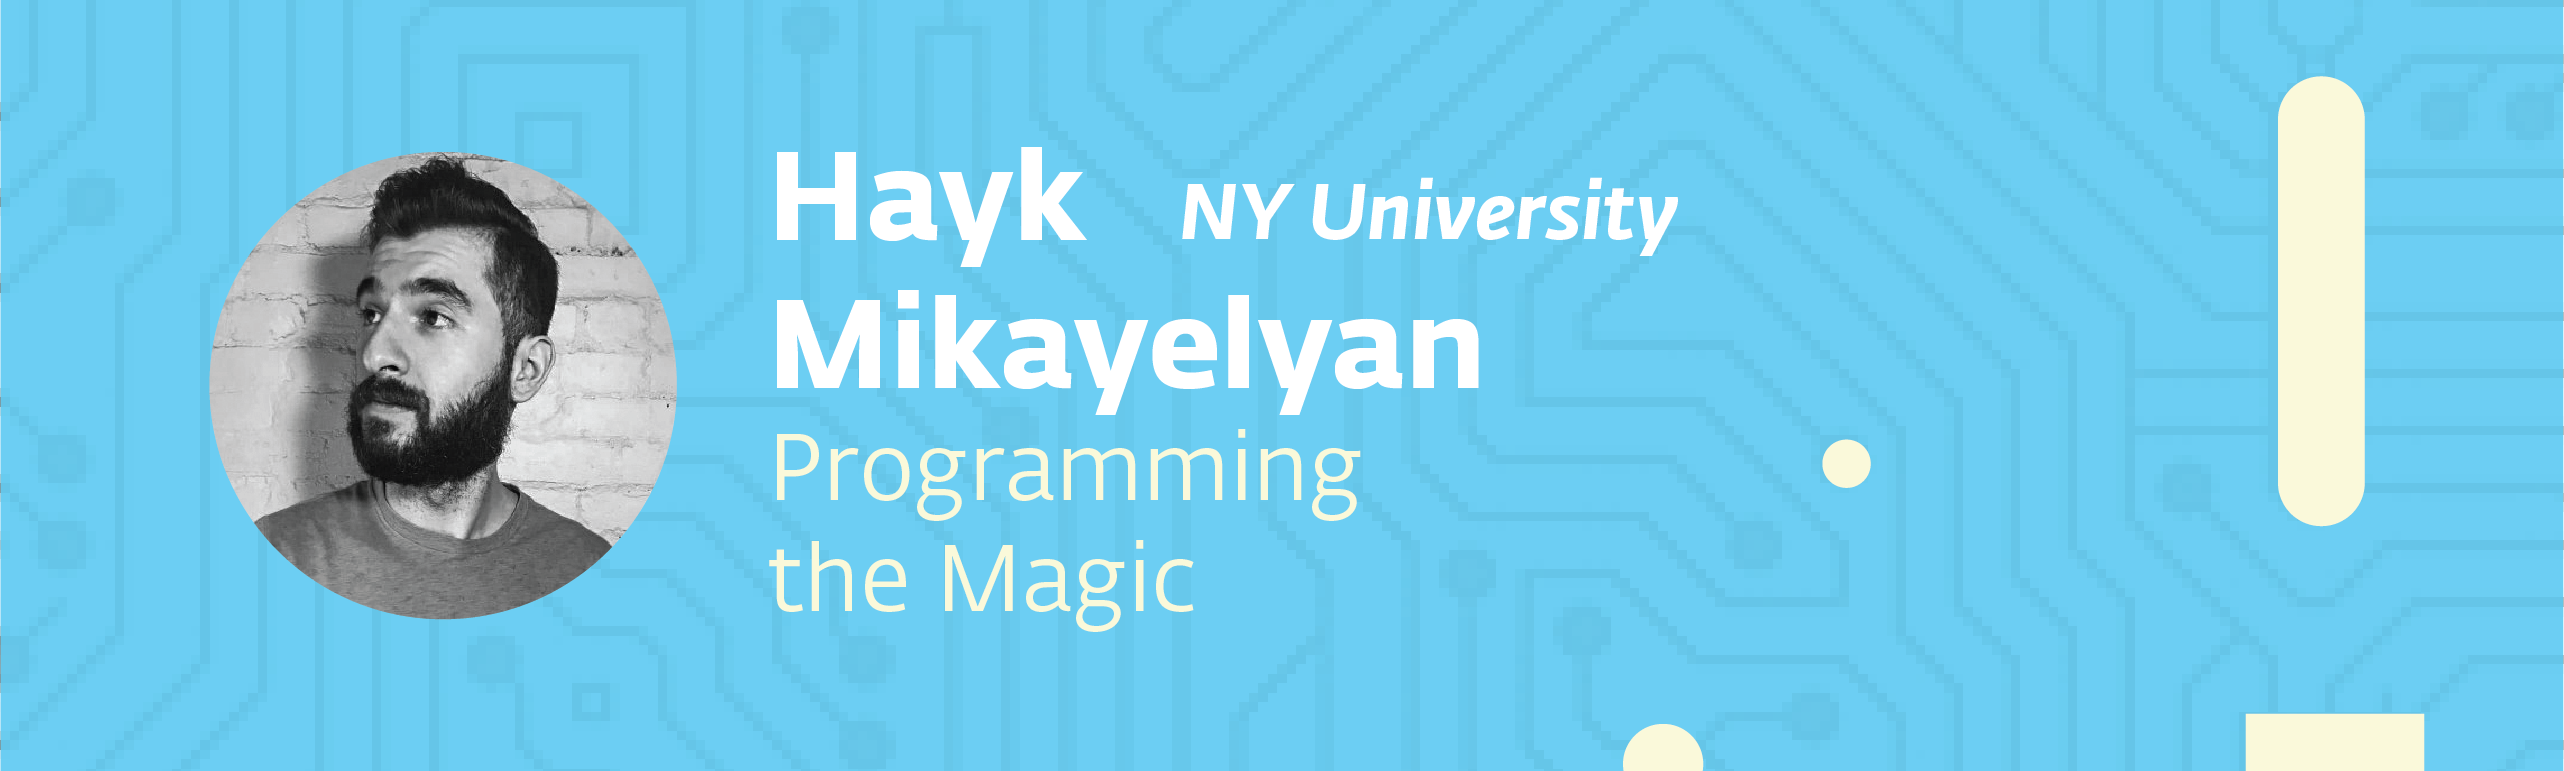 NewBanner for Page 16 - Programming the magic